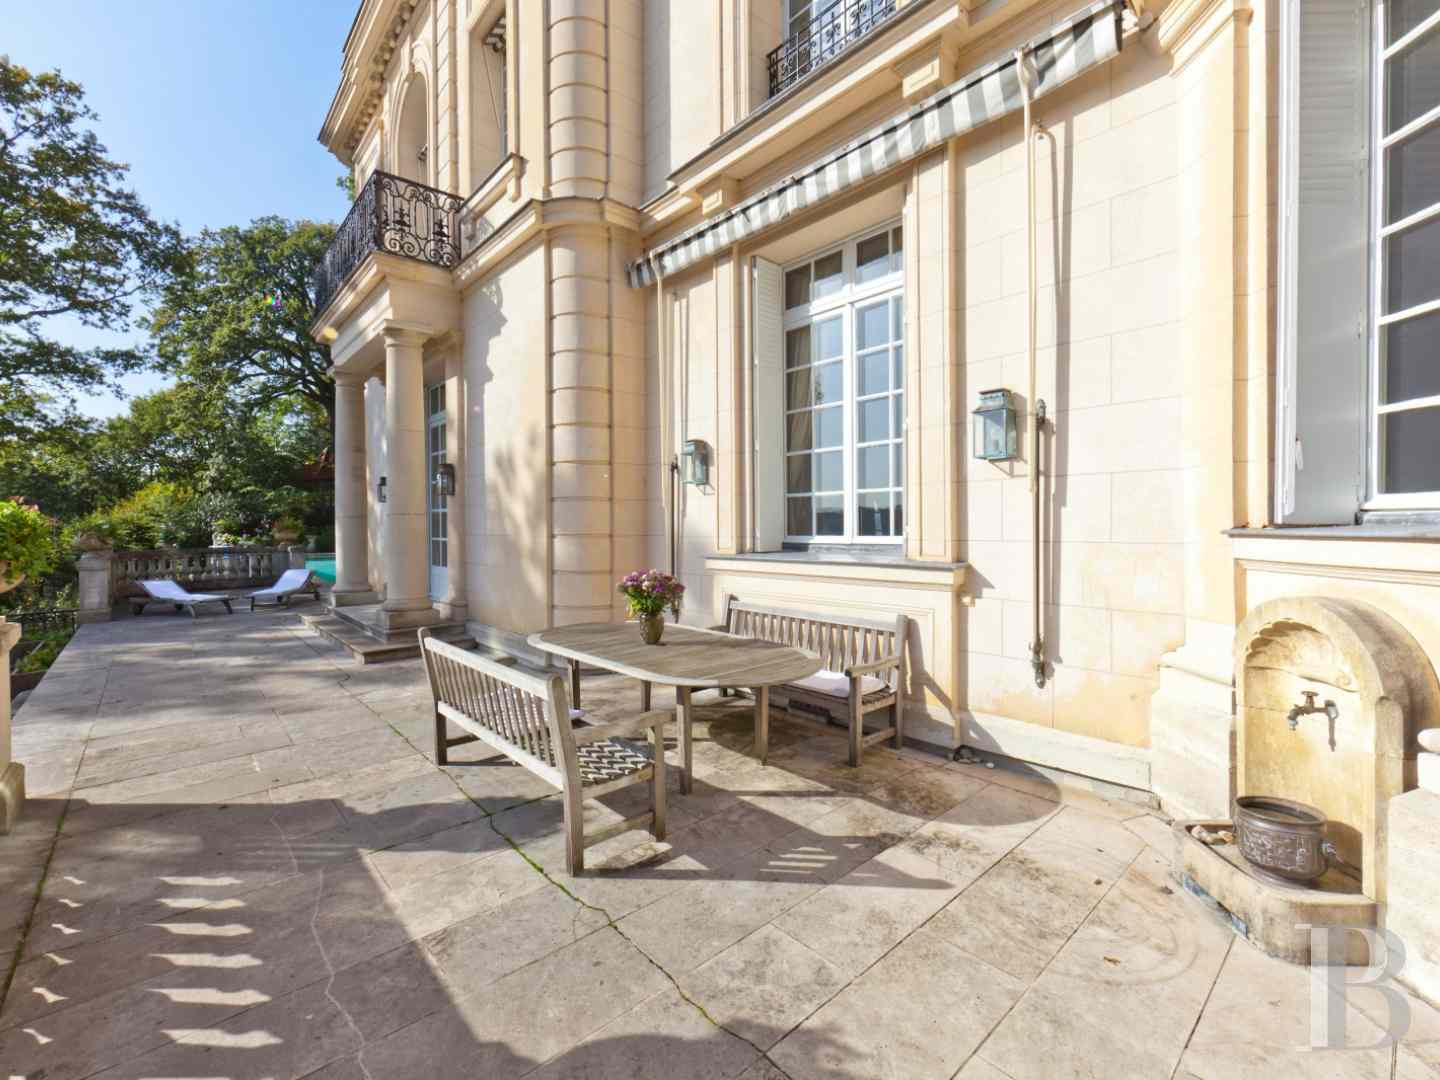 mansion houses for sale paris mansion houses - 15 zoom